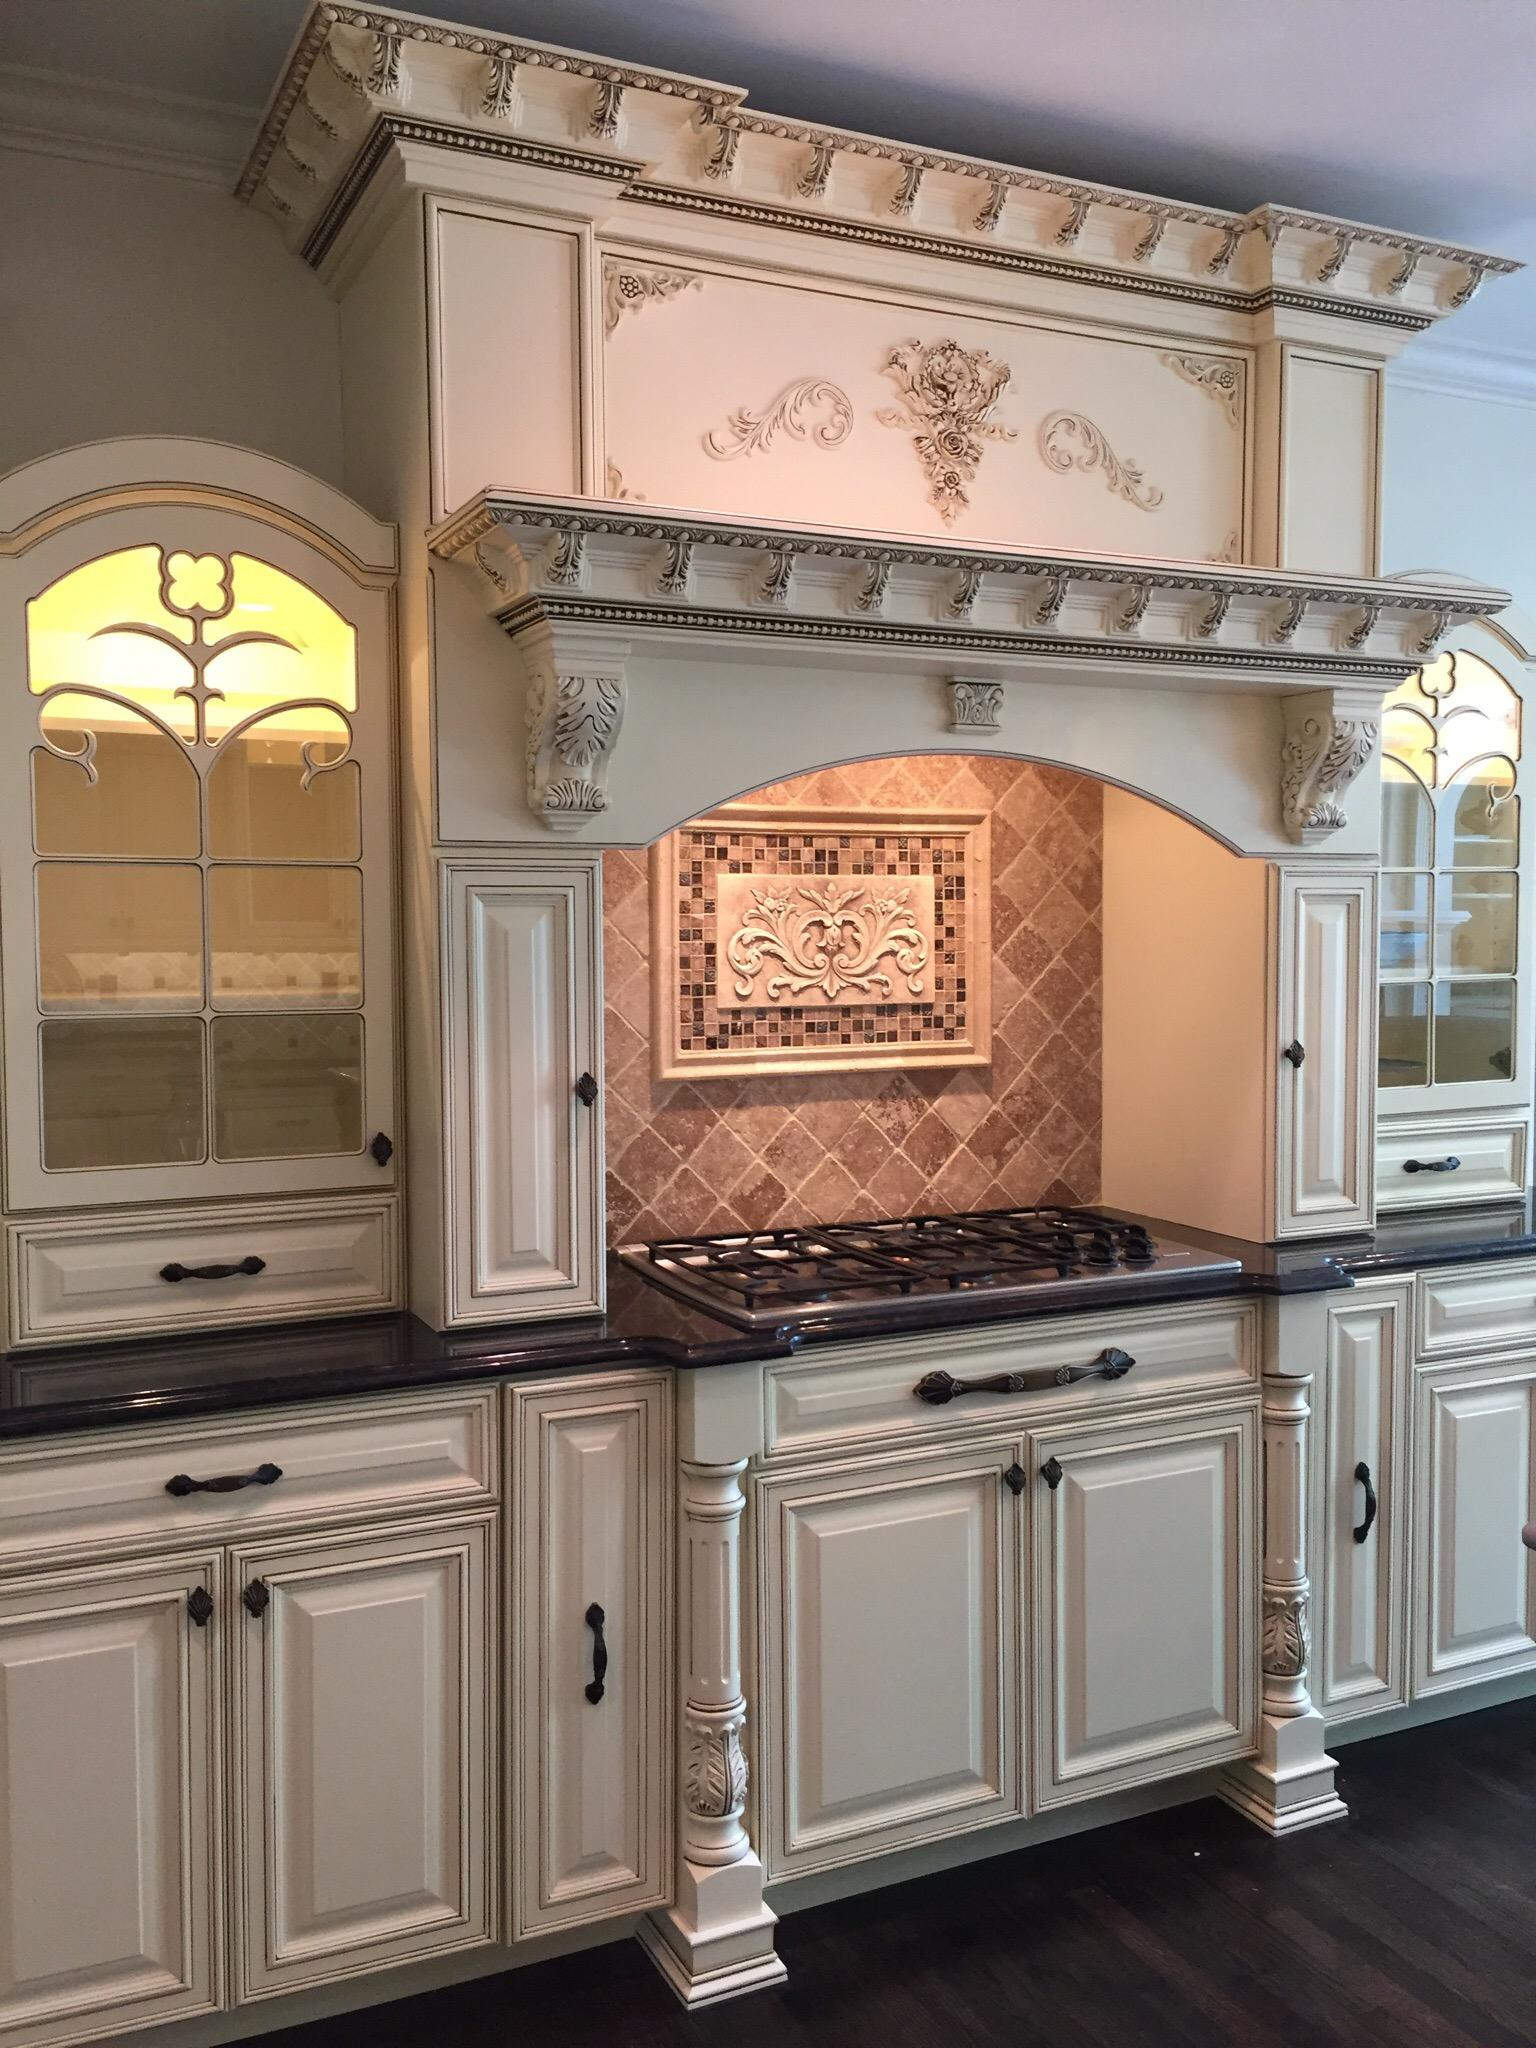 Imperial Design Cabinetry LLC image 24